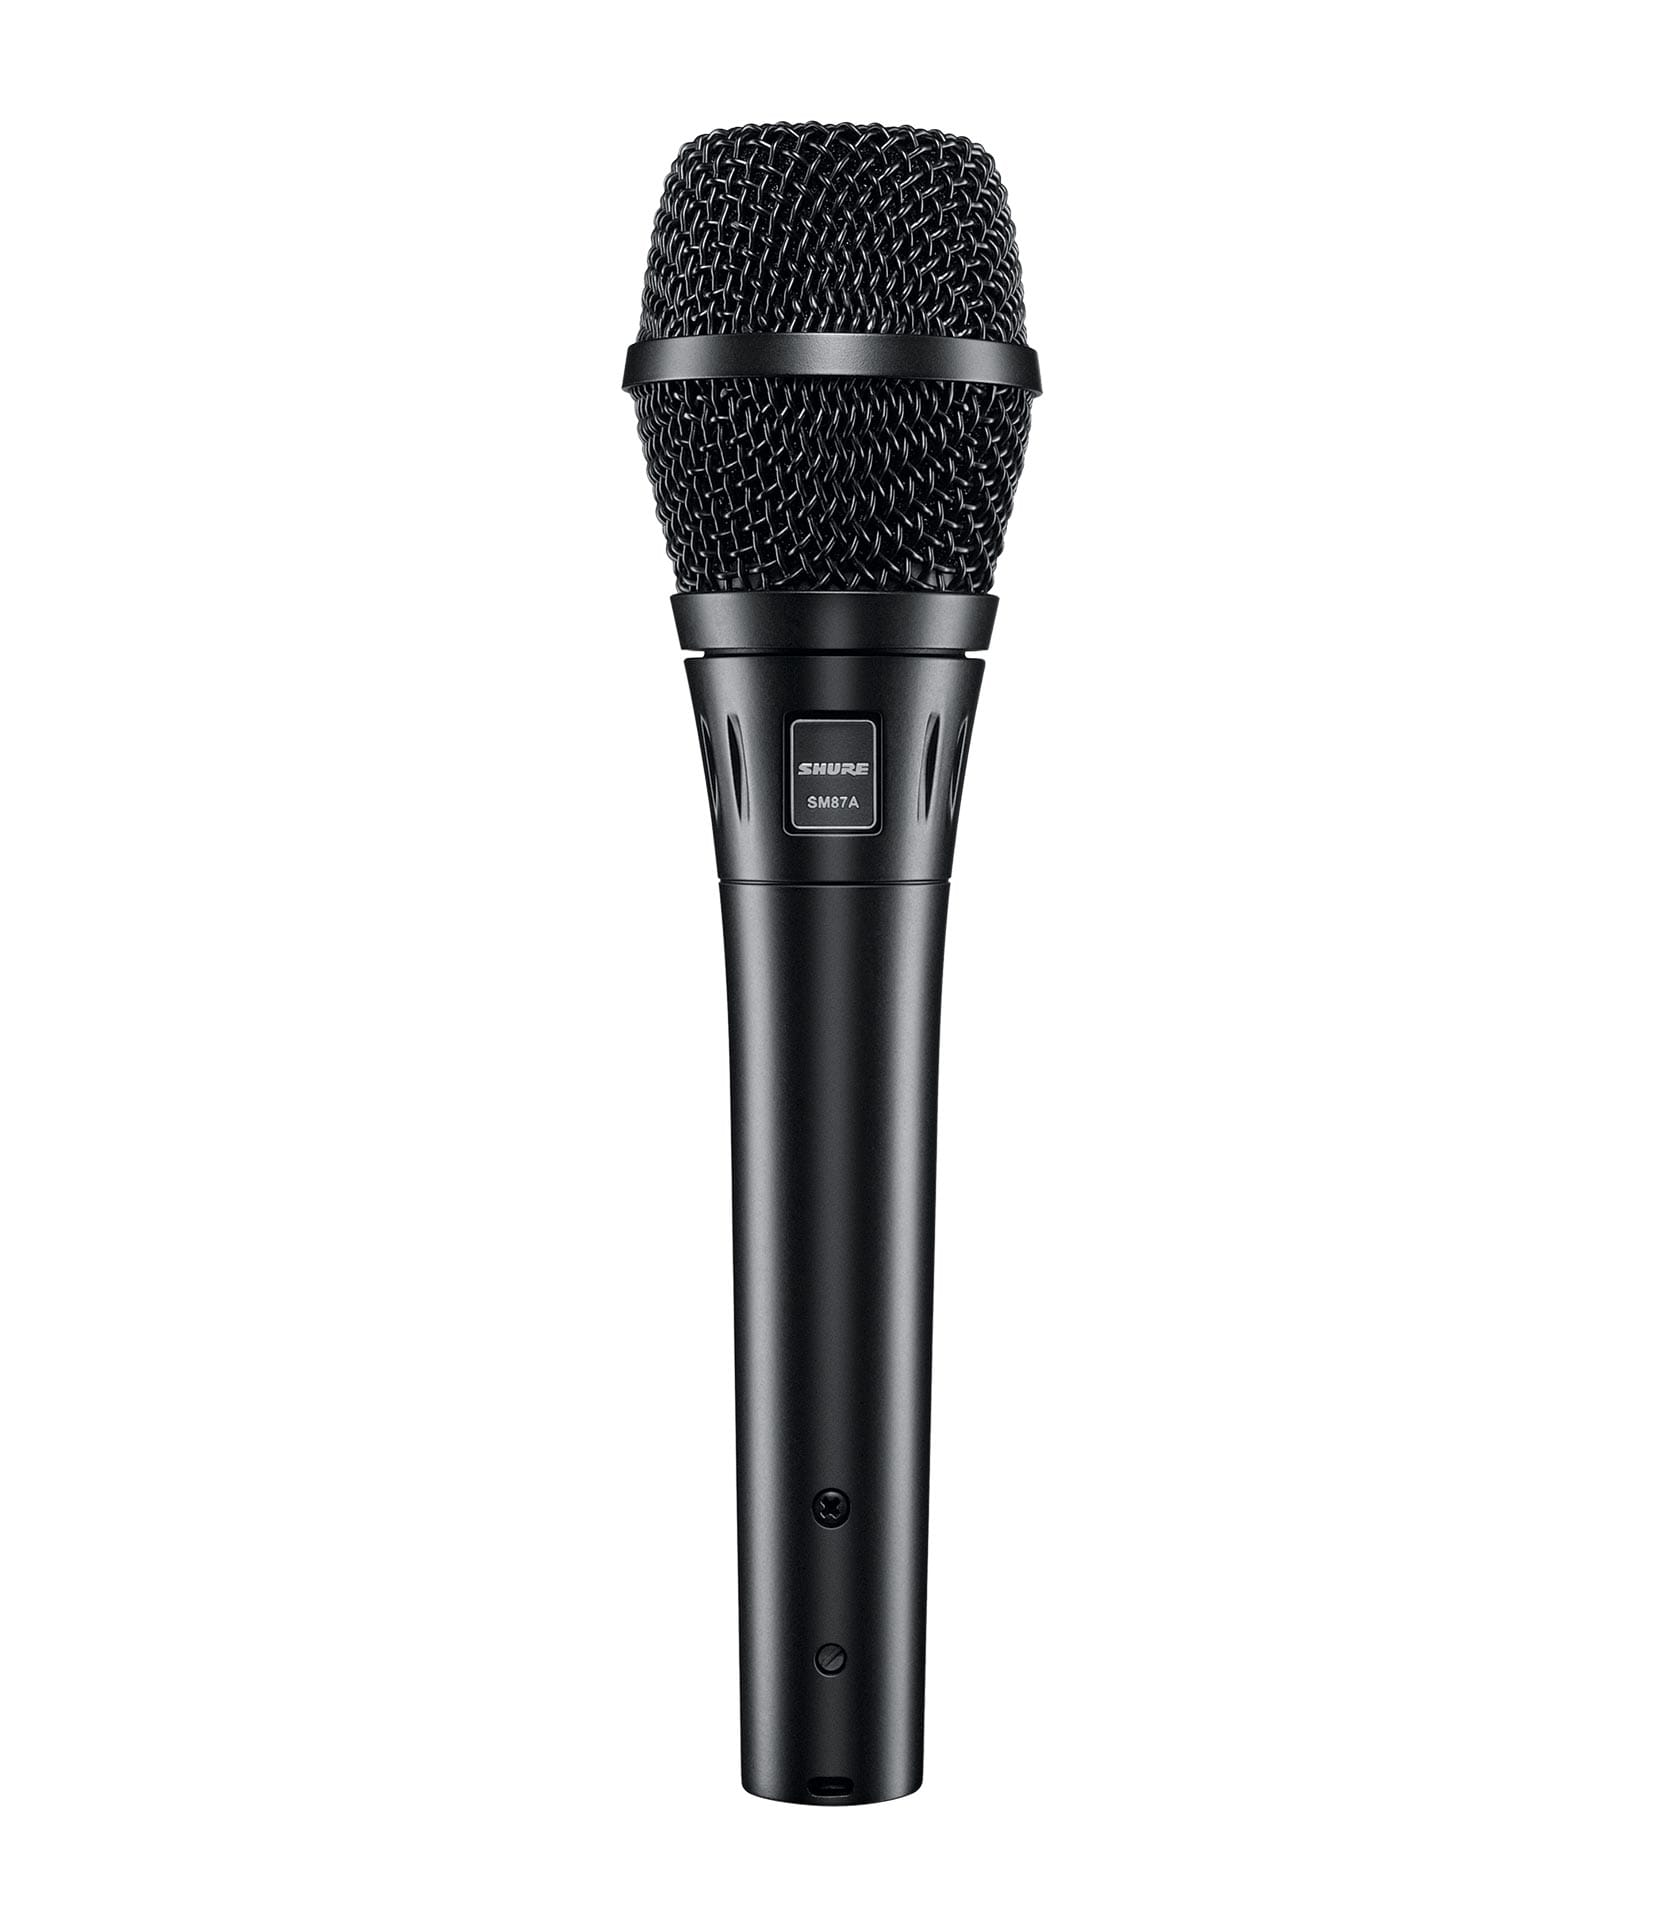 Buy Shure SM87AX Supercardiod Condenser Rugged Vocal Mic Melody House